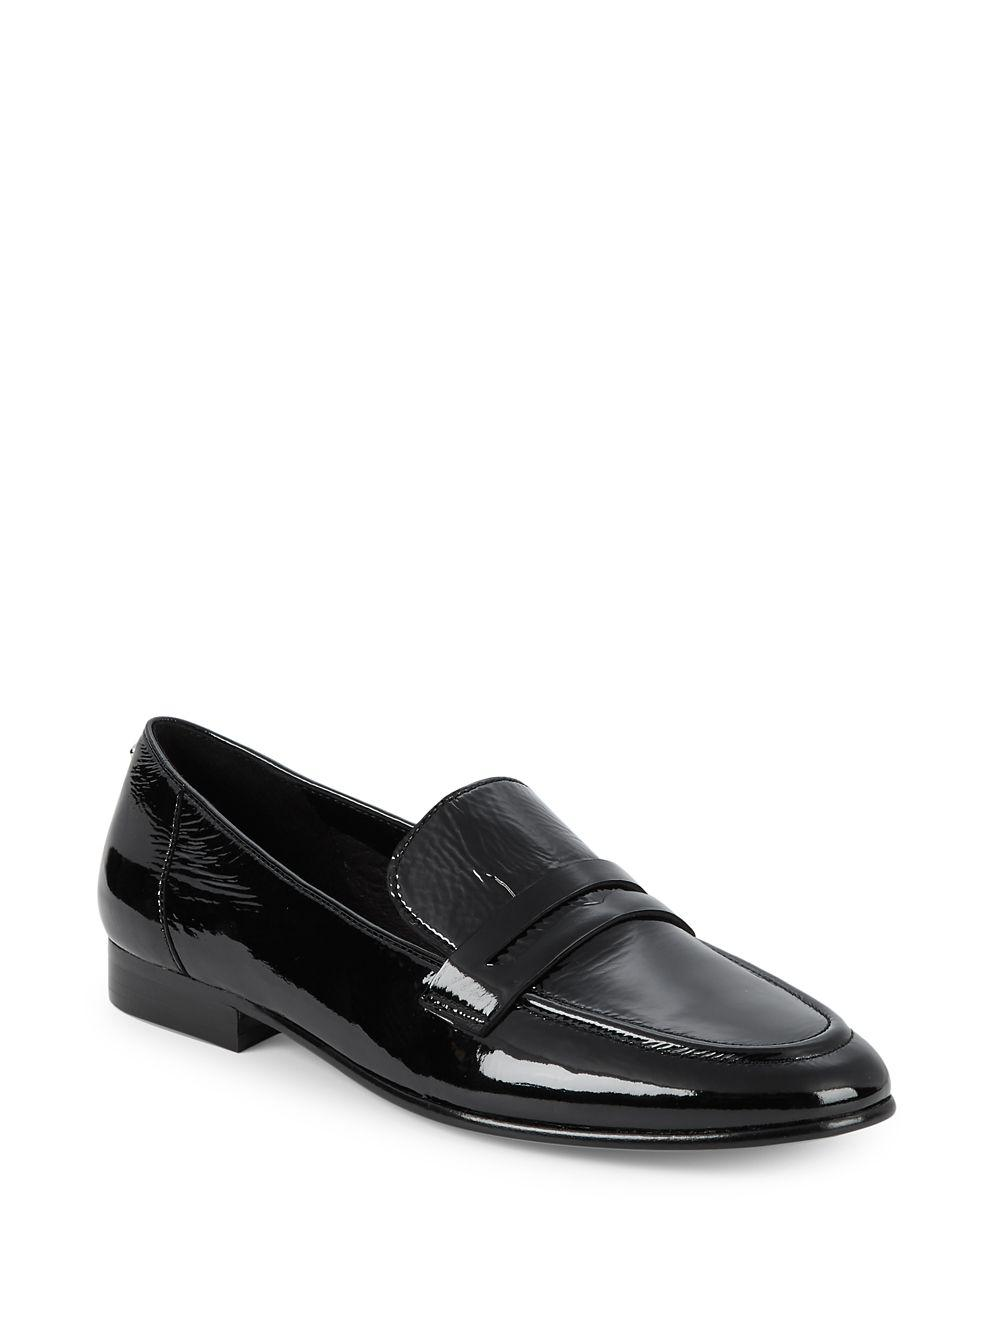 f94001b4414 Lyst - Kate Spade Genevieve Patent Leather Loafers in Black